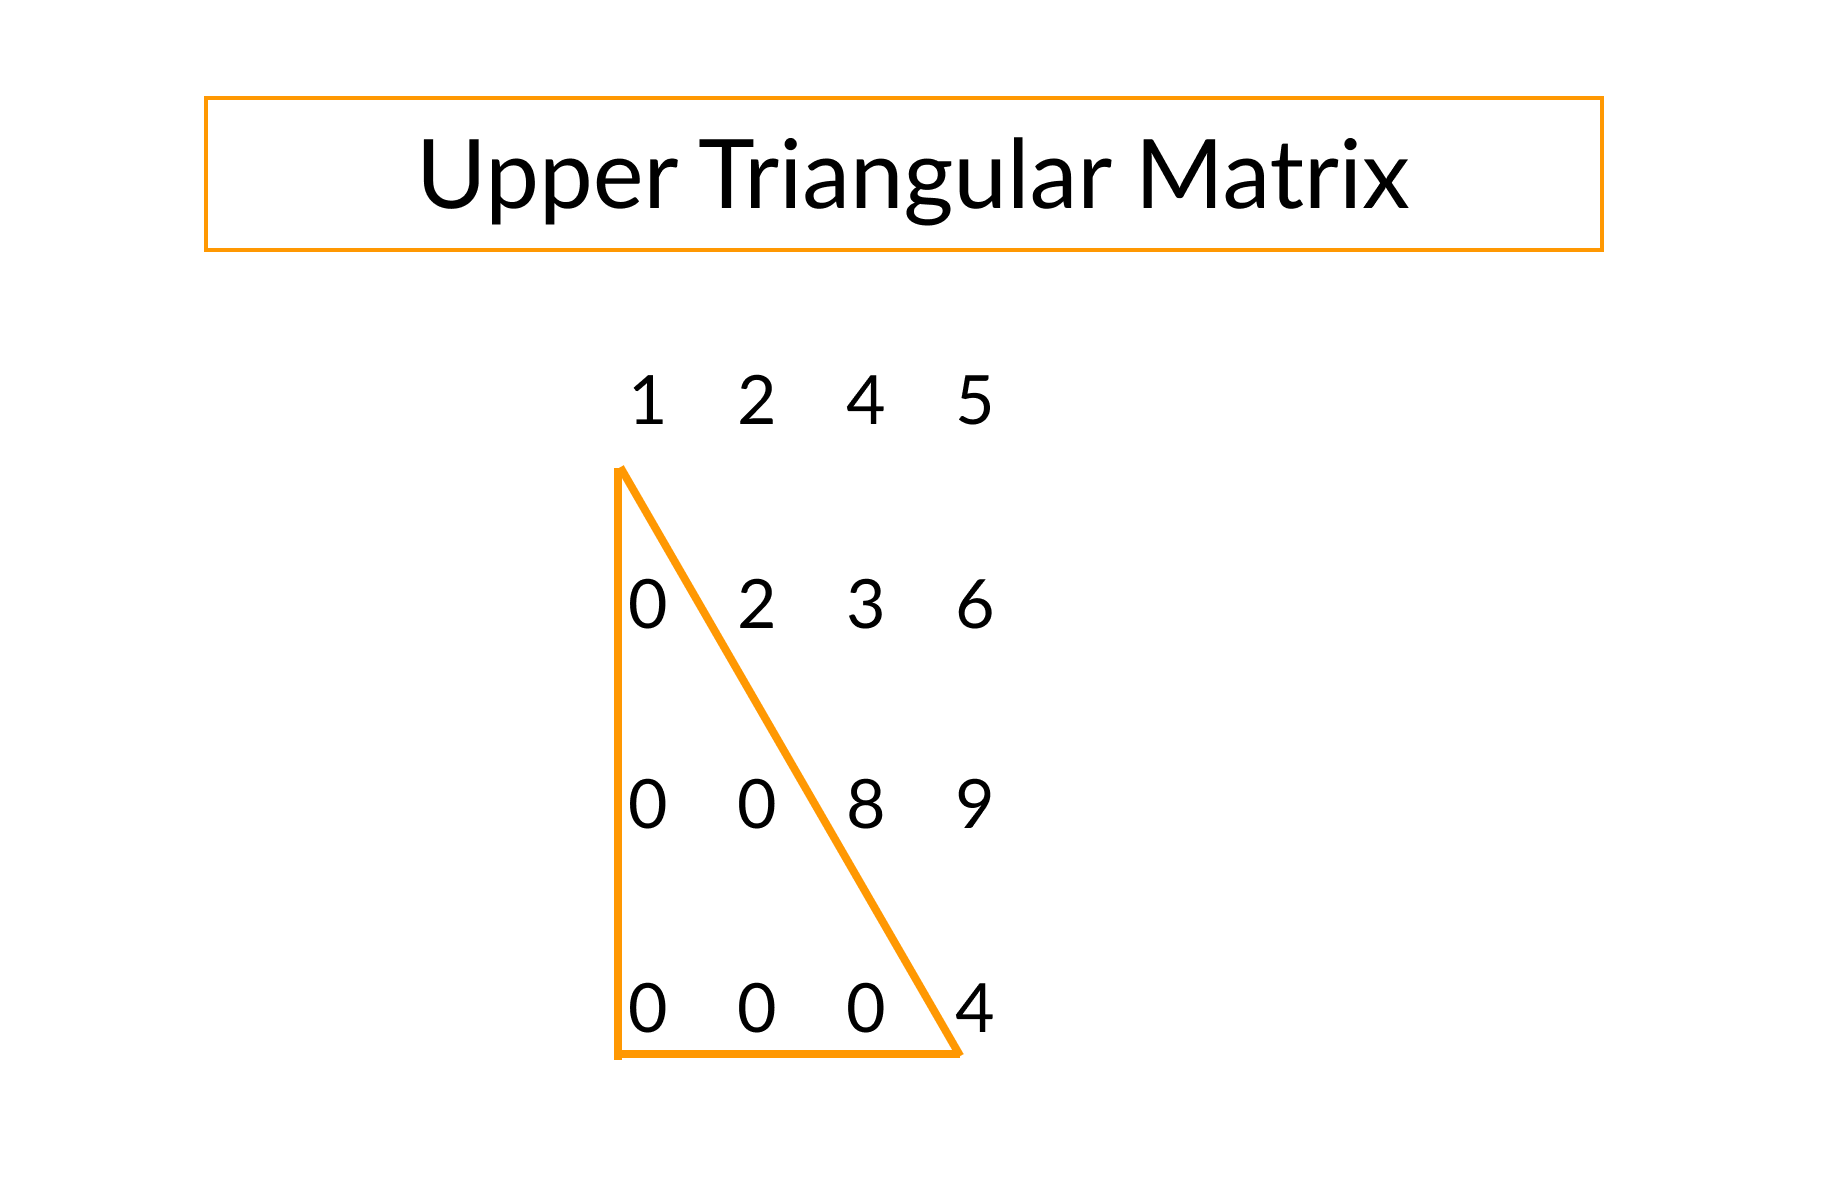 upper triangular matrix or not